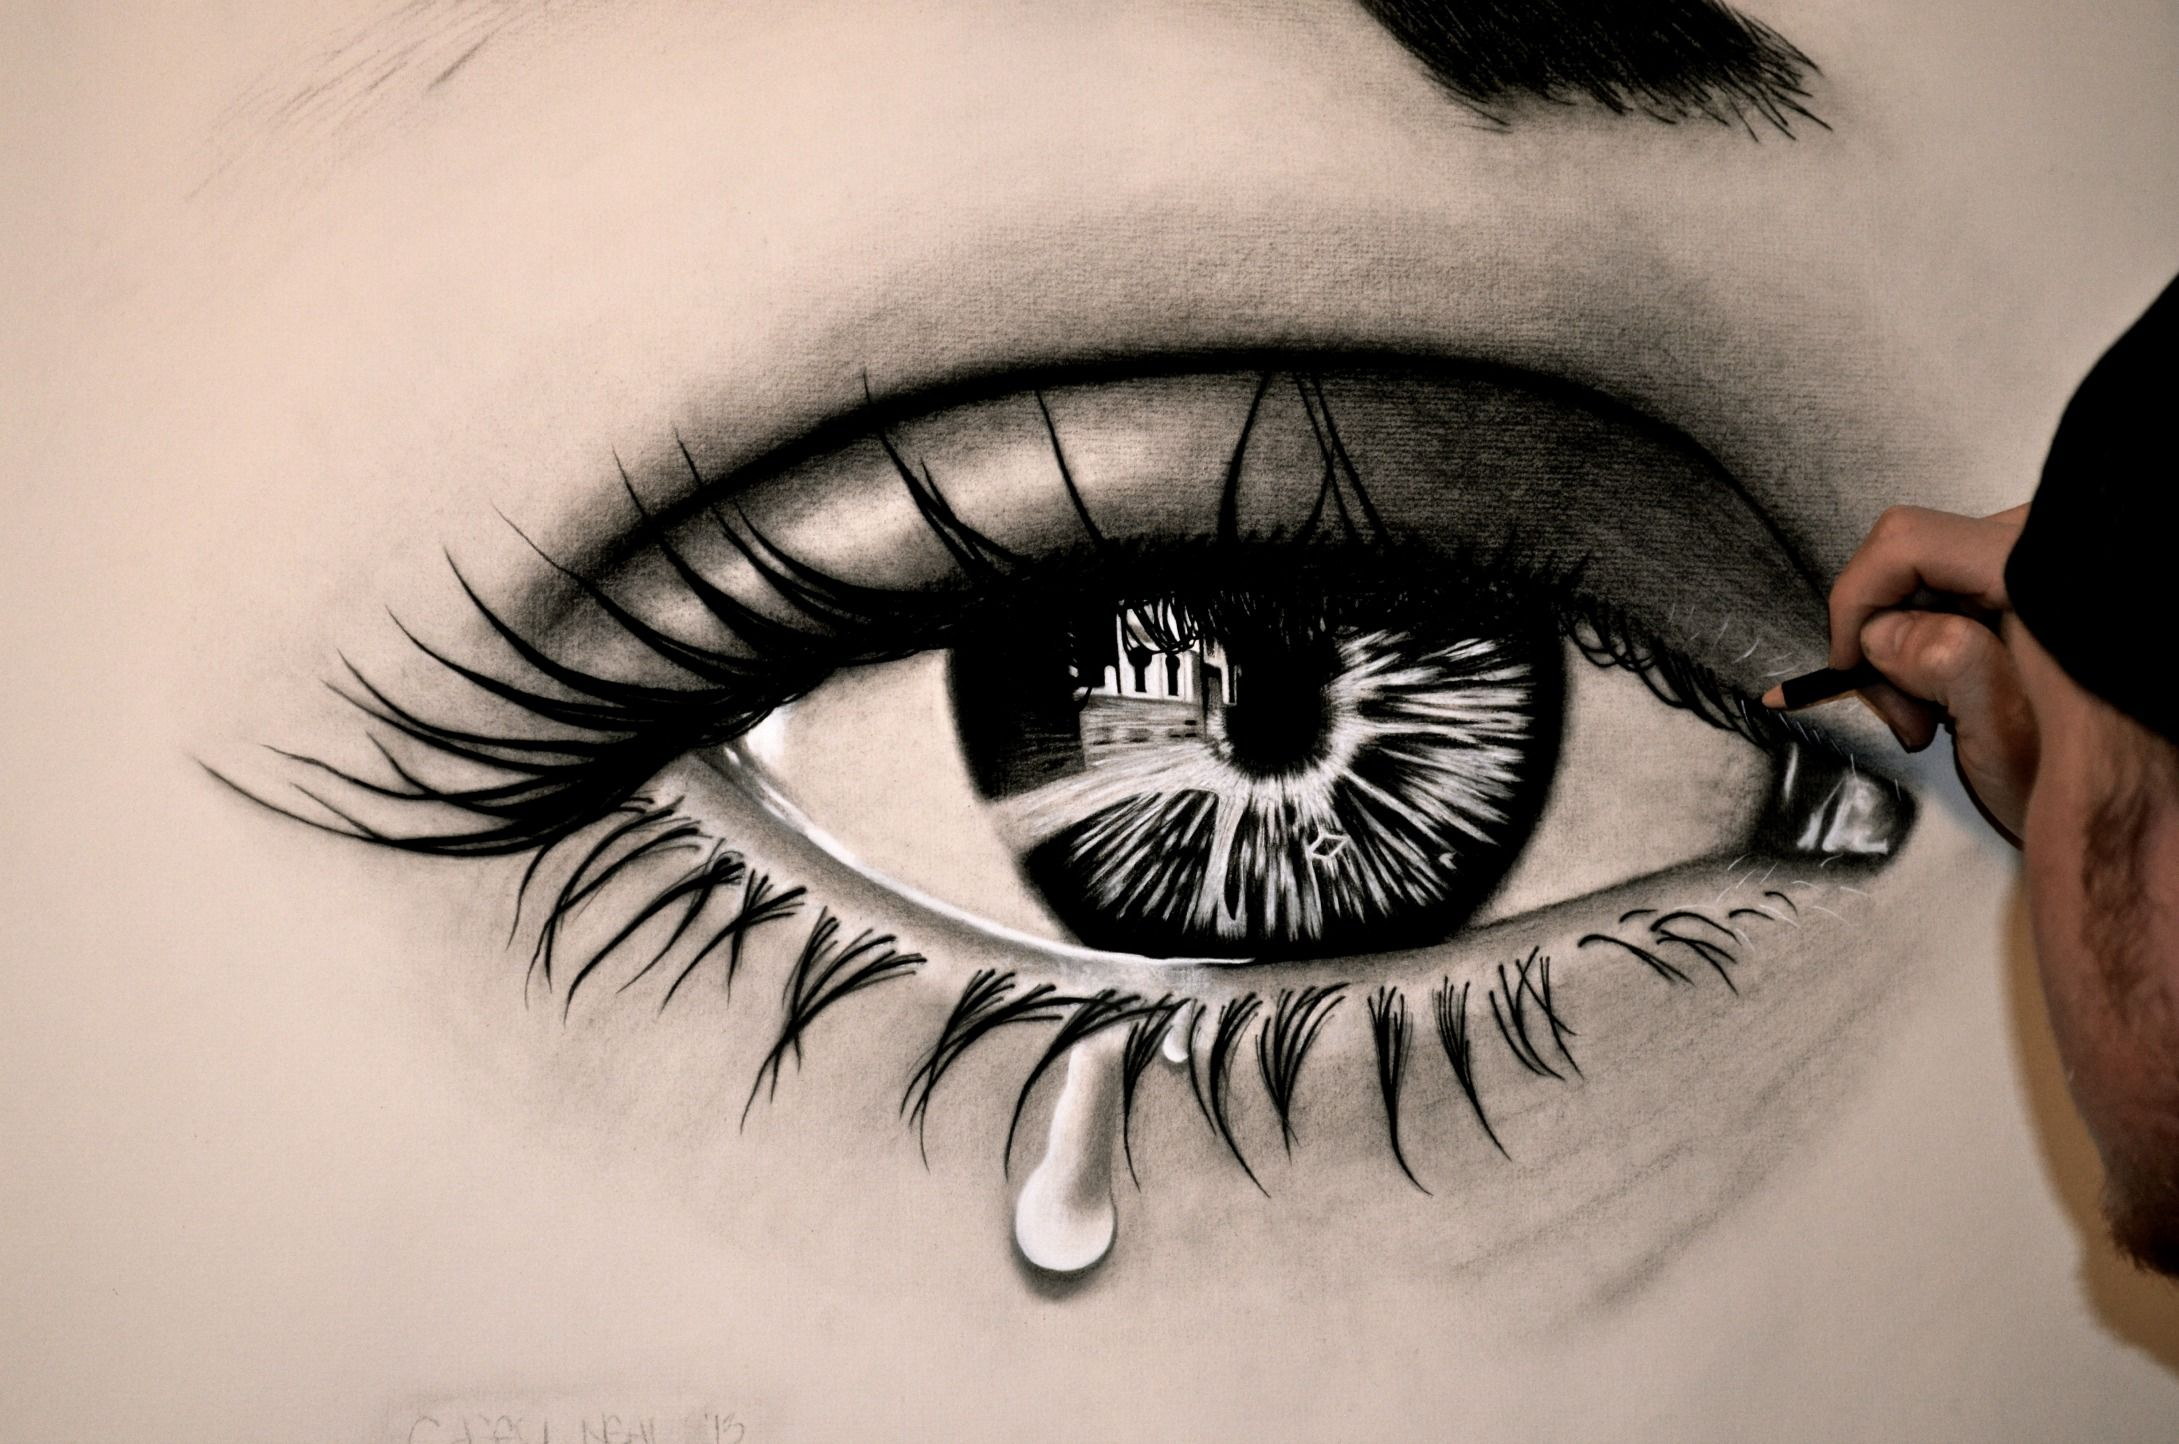 15 Unbelievable Drawings Of Eyes